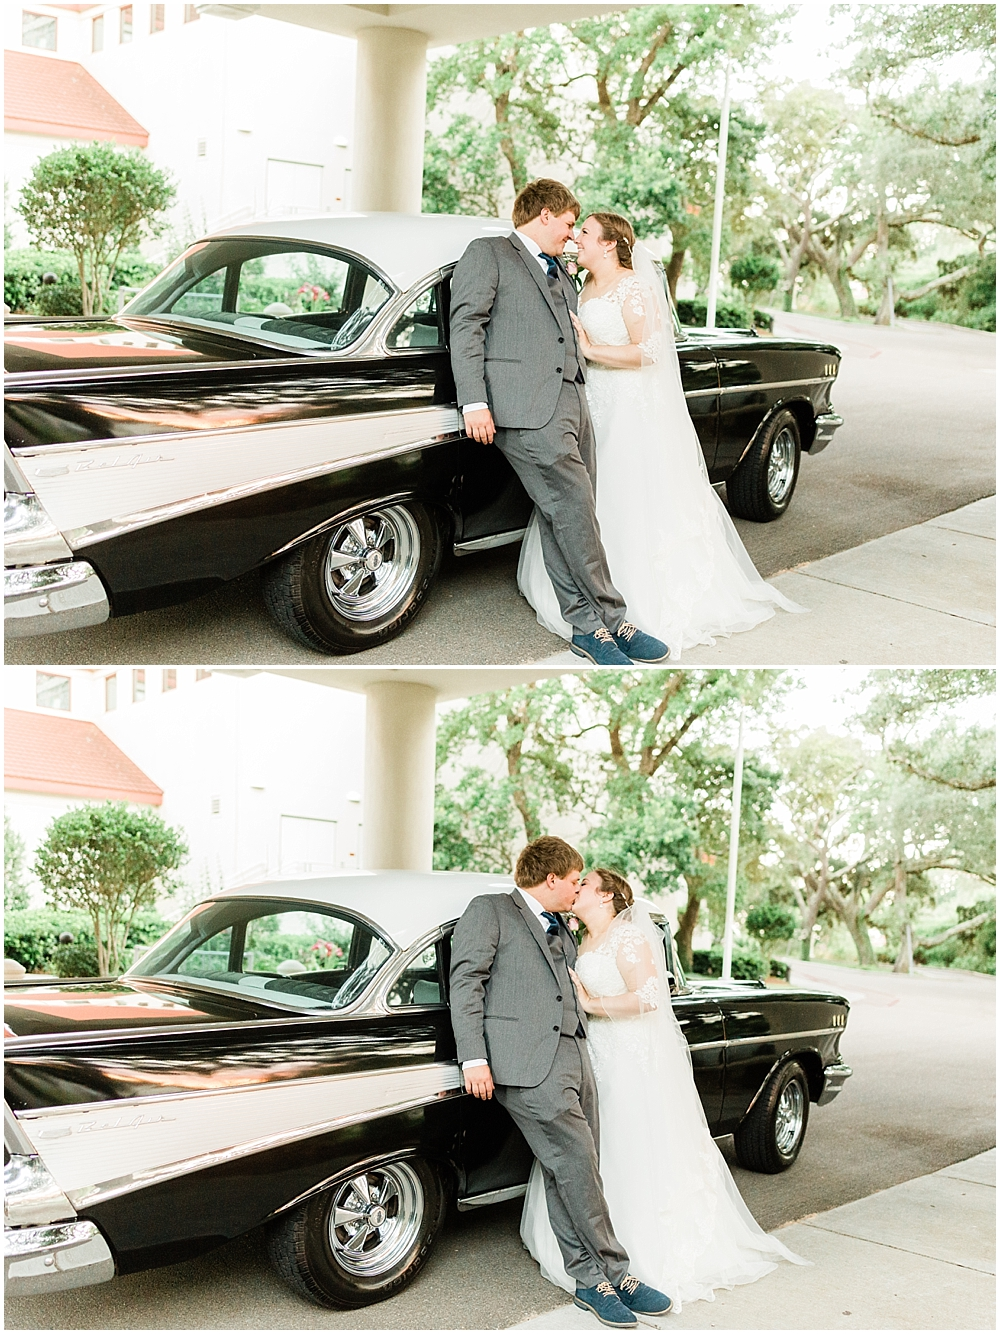 Ashton-Clark-Photography-Wedding-Portrait-Family-Photographer-Mobile-Alabama_0138.jpg